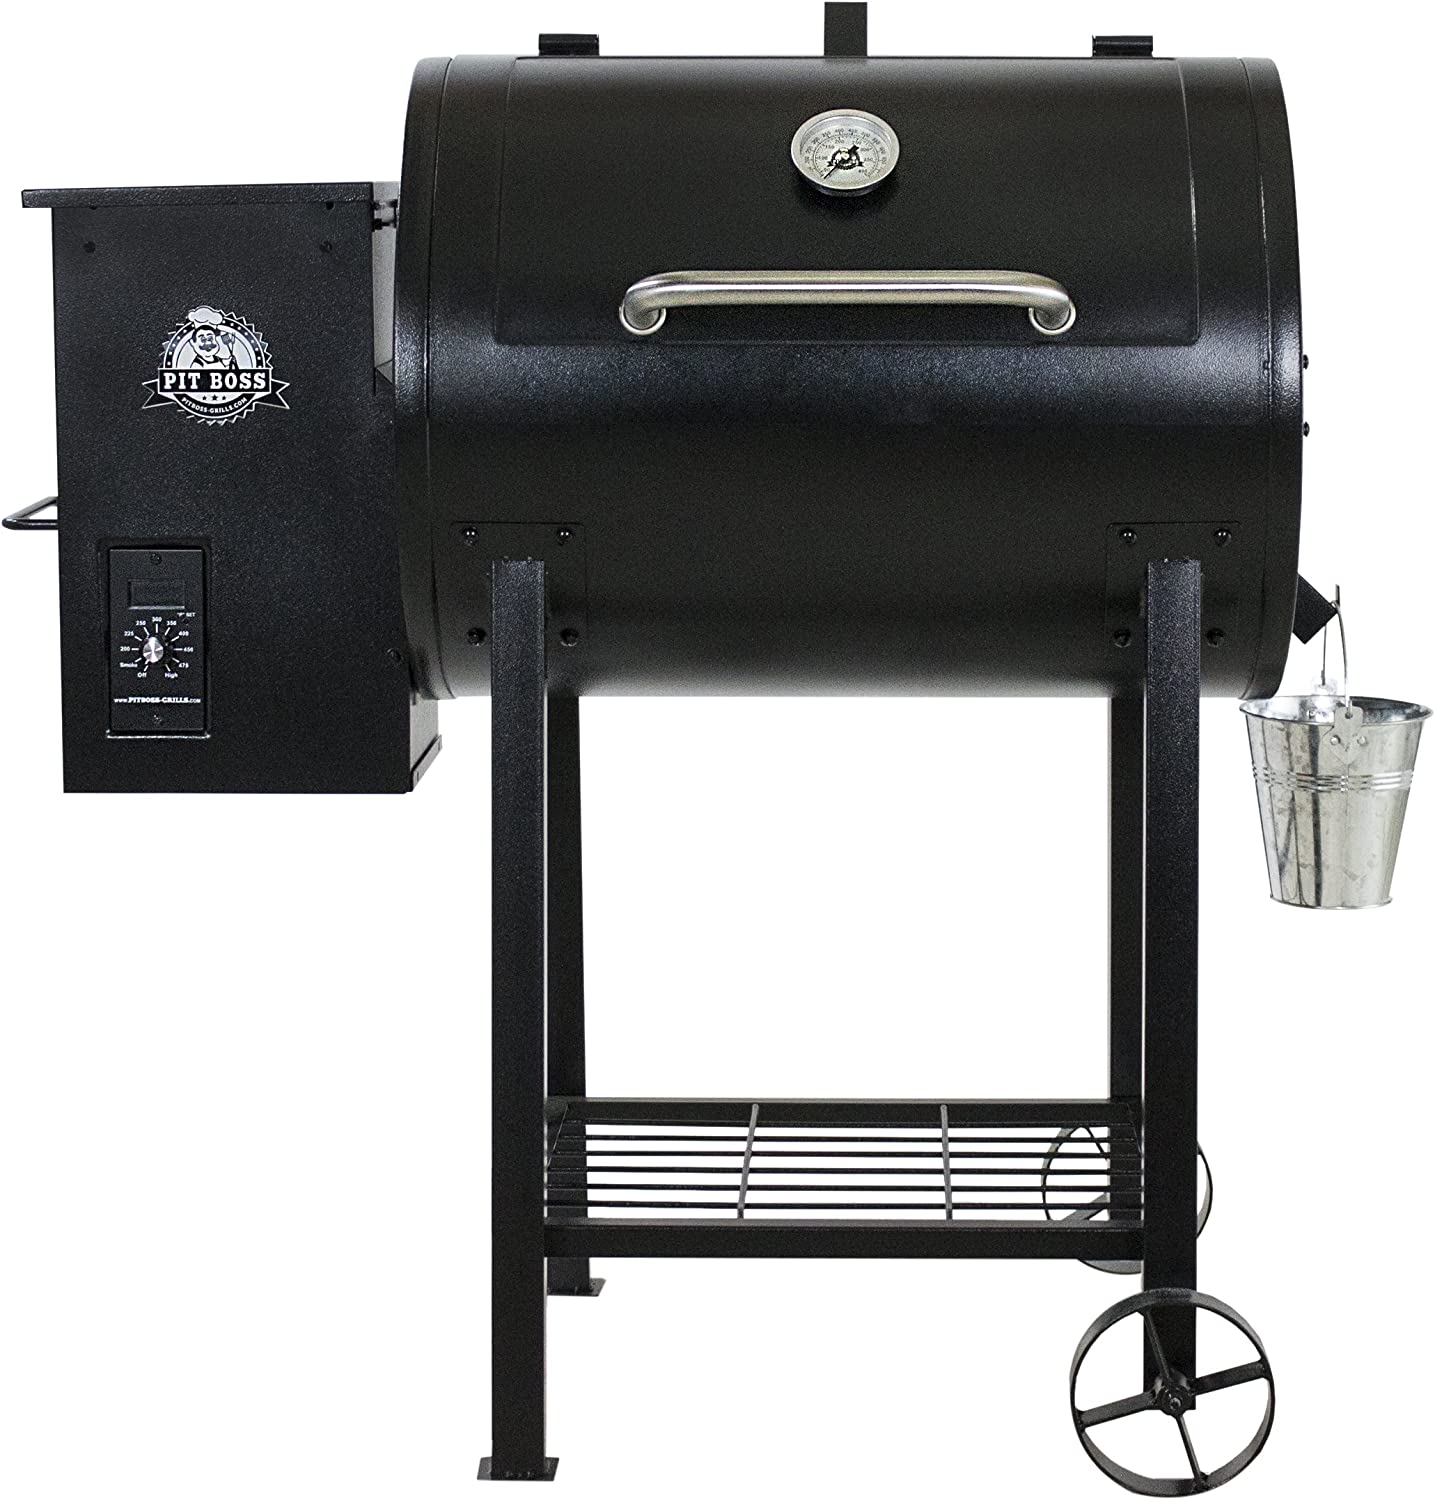 Pit Boss Pb700fb Wood Fired Pellet Grill W Flame Broiler Bbq Black 105x68x111 25 Cm Amazon Co Uk Garden Outdoors